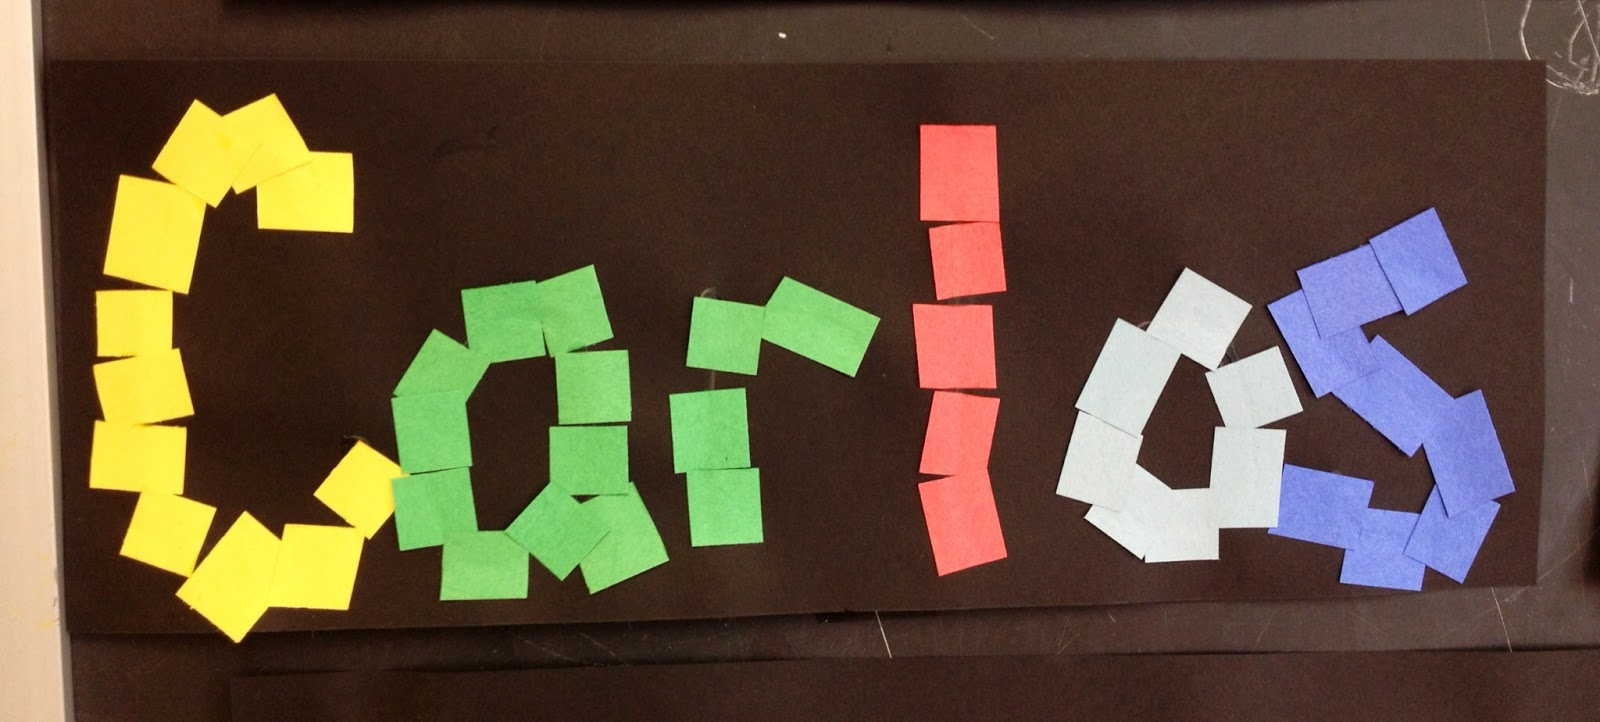 Easy Preschool Name Crafts Outnumbered 3 To 1